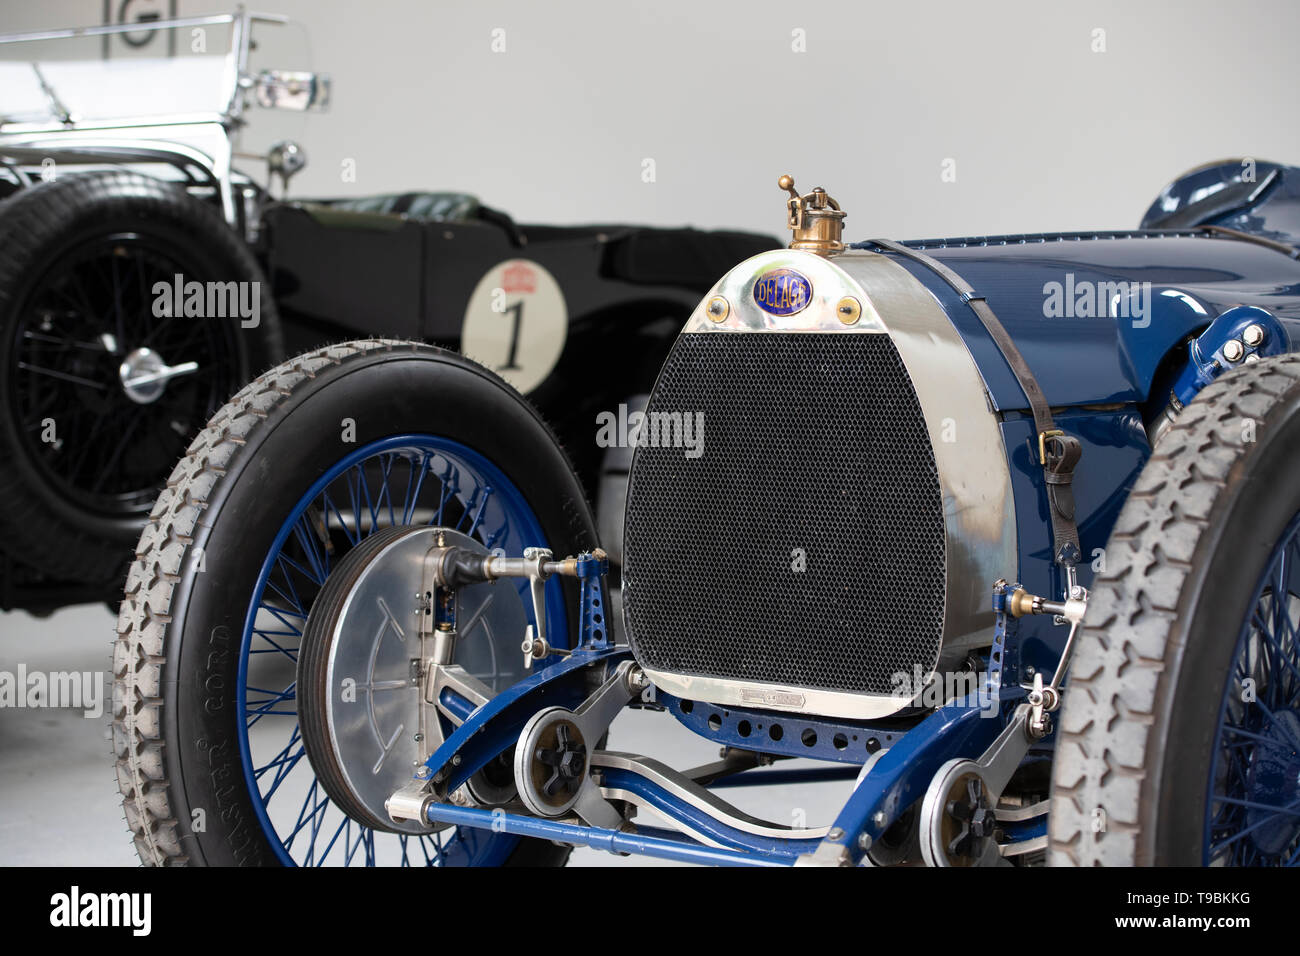 Vintage 1923 Delage Bequet racing car in a showroom at Bicester Heritage Centre 'Drive It Day'. Bicester, Oxfordshire, England - Stock Image